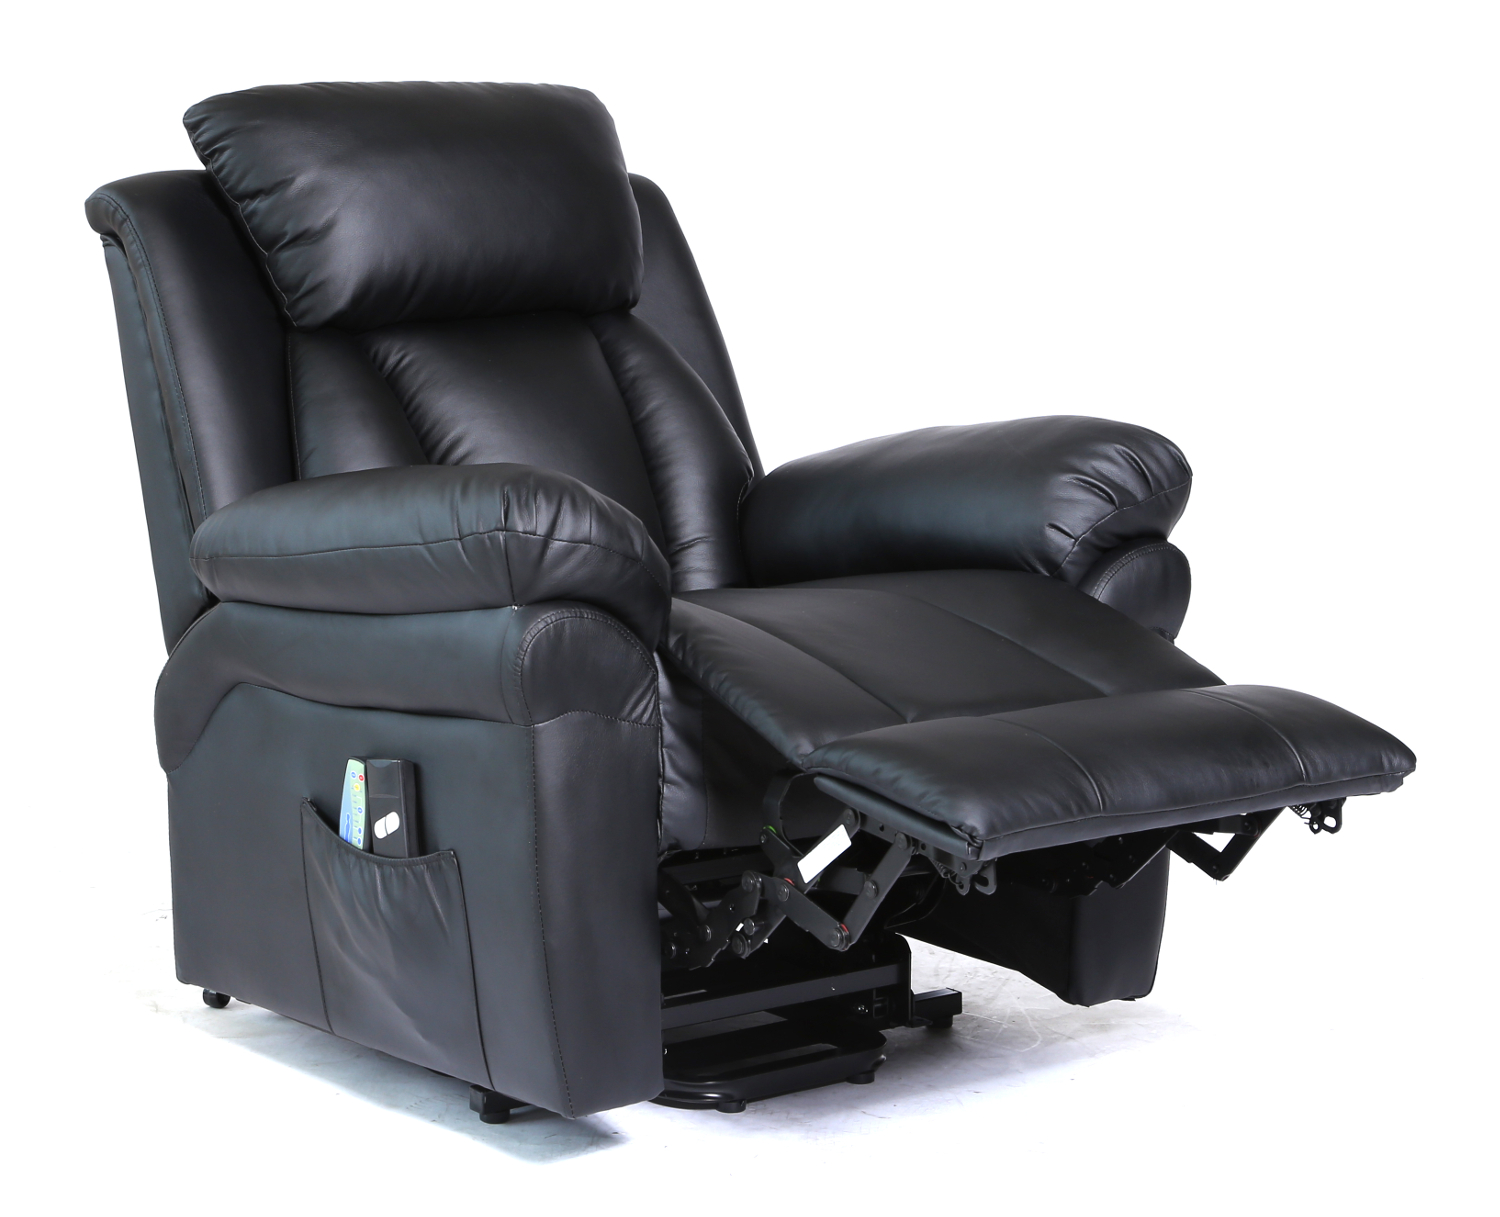 Recliner Chairs Lift